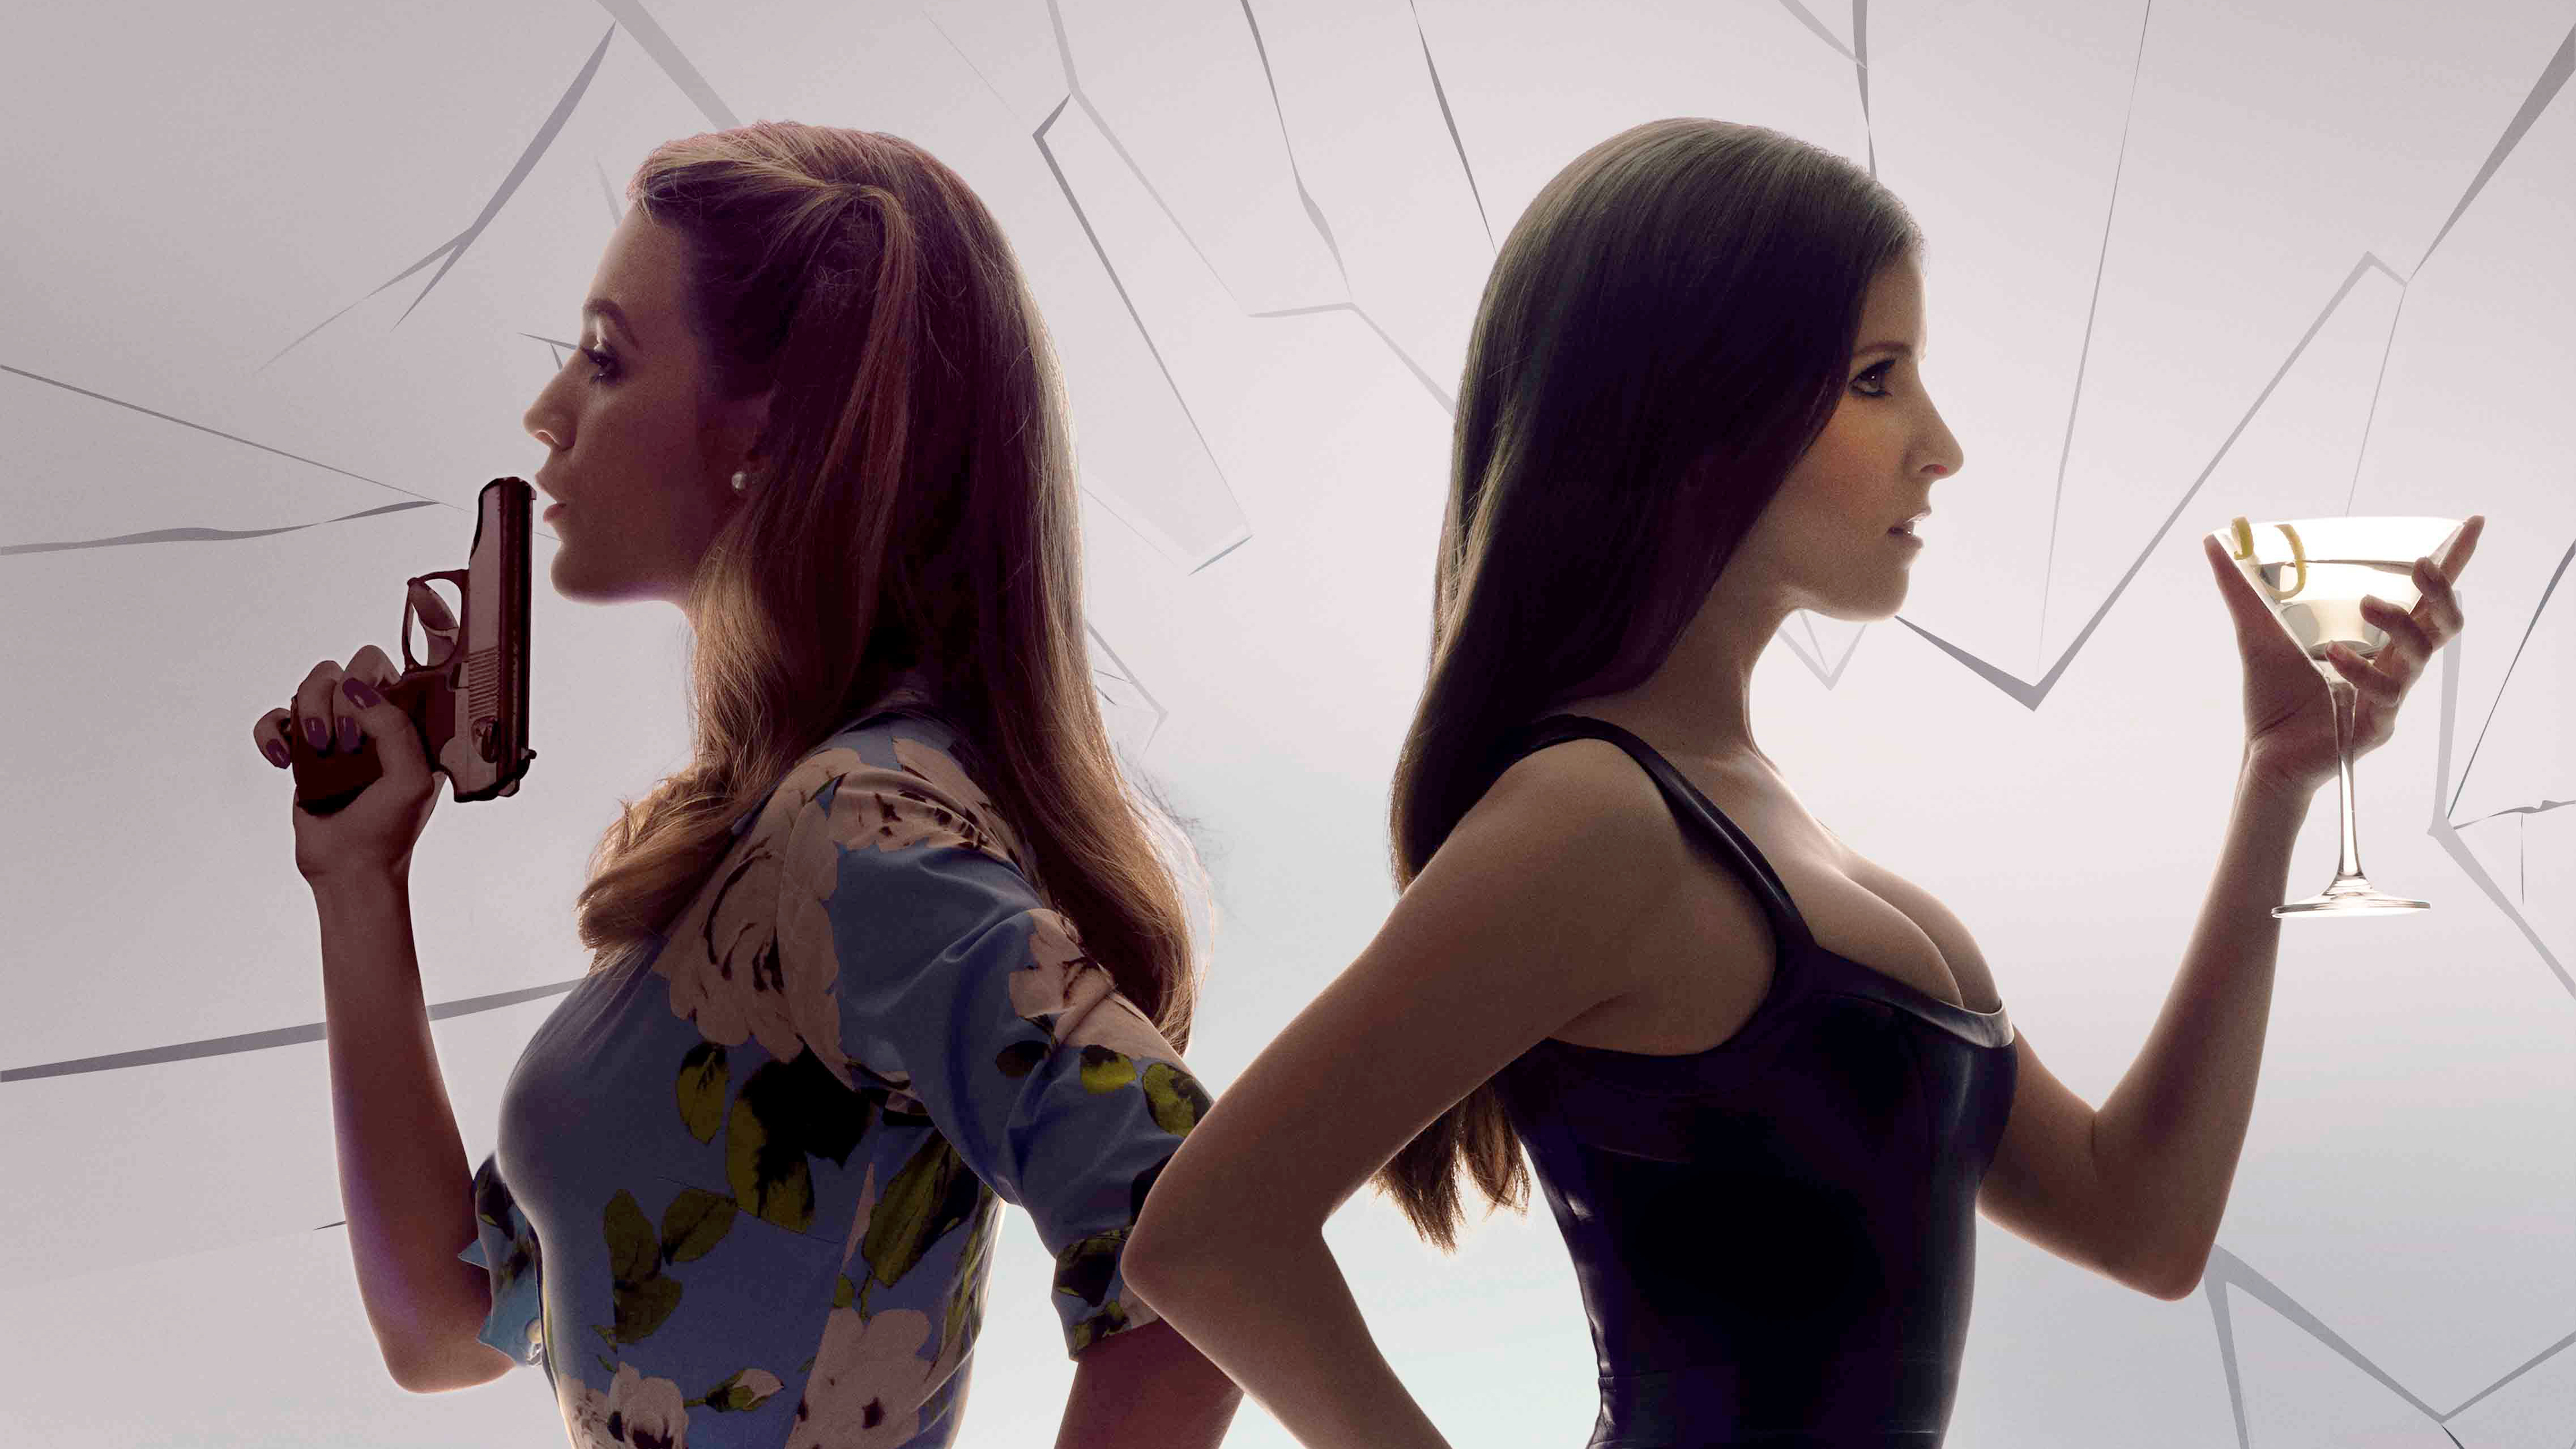 a simple favor 2018 movie 4k 1537644182 - A Simple Favor 2018 Movie 4k - movies wallpapers, hd-wallpapers, blake lively wallpapers, anna kendrick wallpapers, a simple favor wallpapers, 4k-wallpapers, 2018-movies-wallpapers